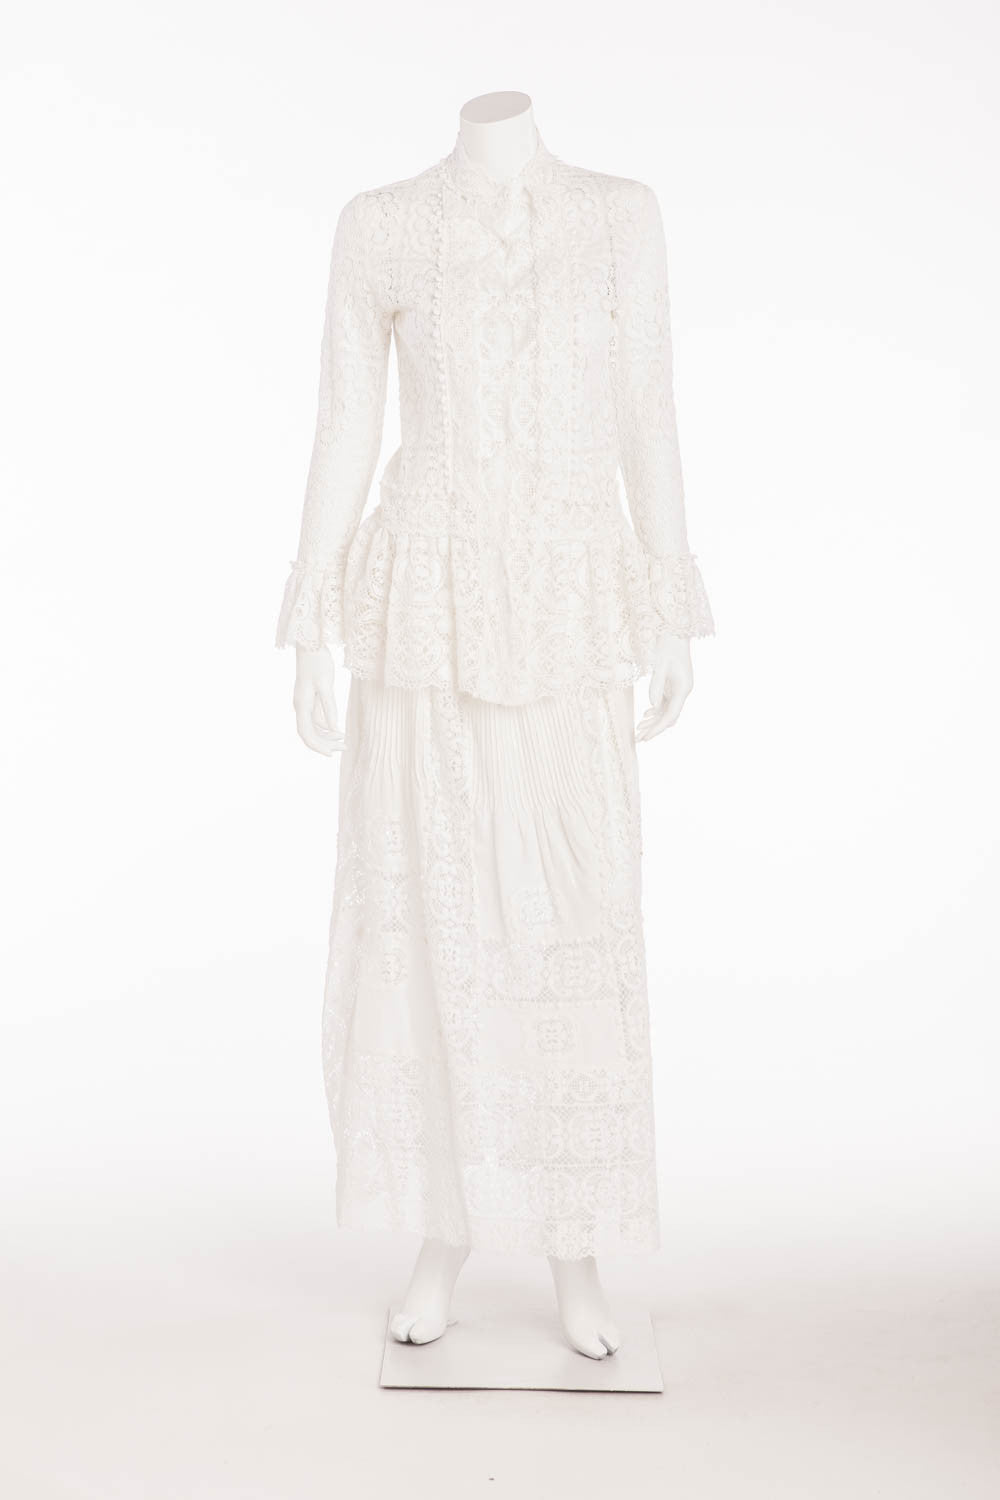 Oscar De La Renta - 2PC White Lace Long Sleeve Snap Button Top with Skirt - US 6